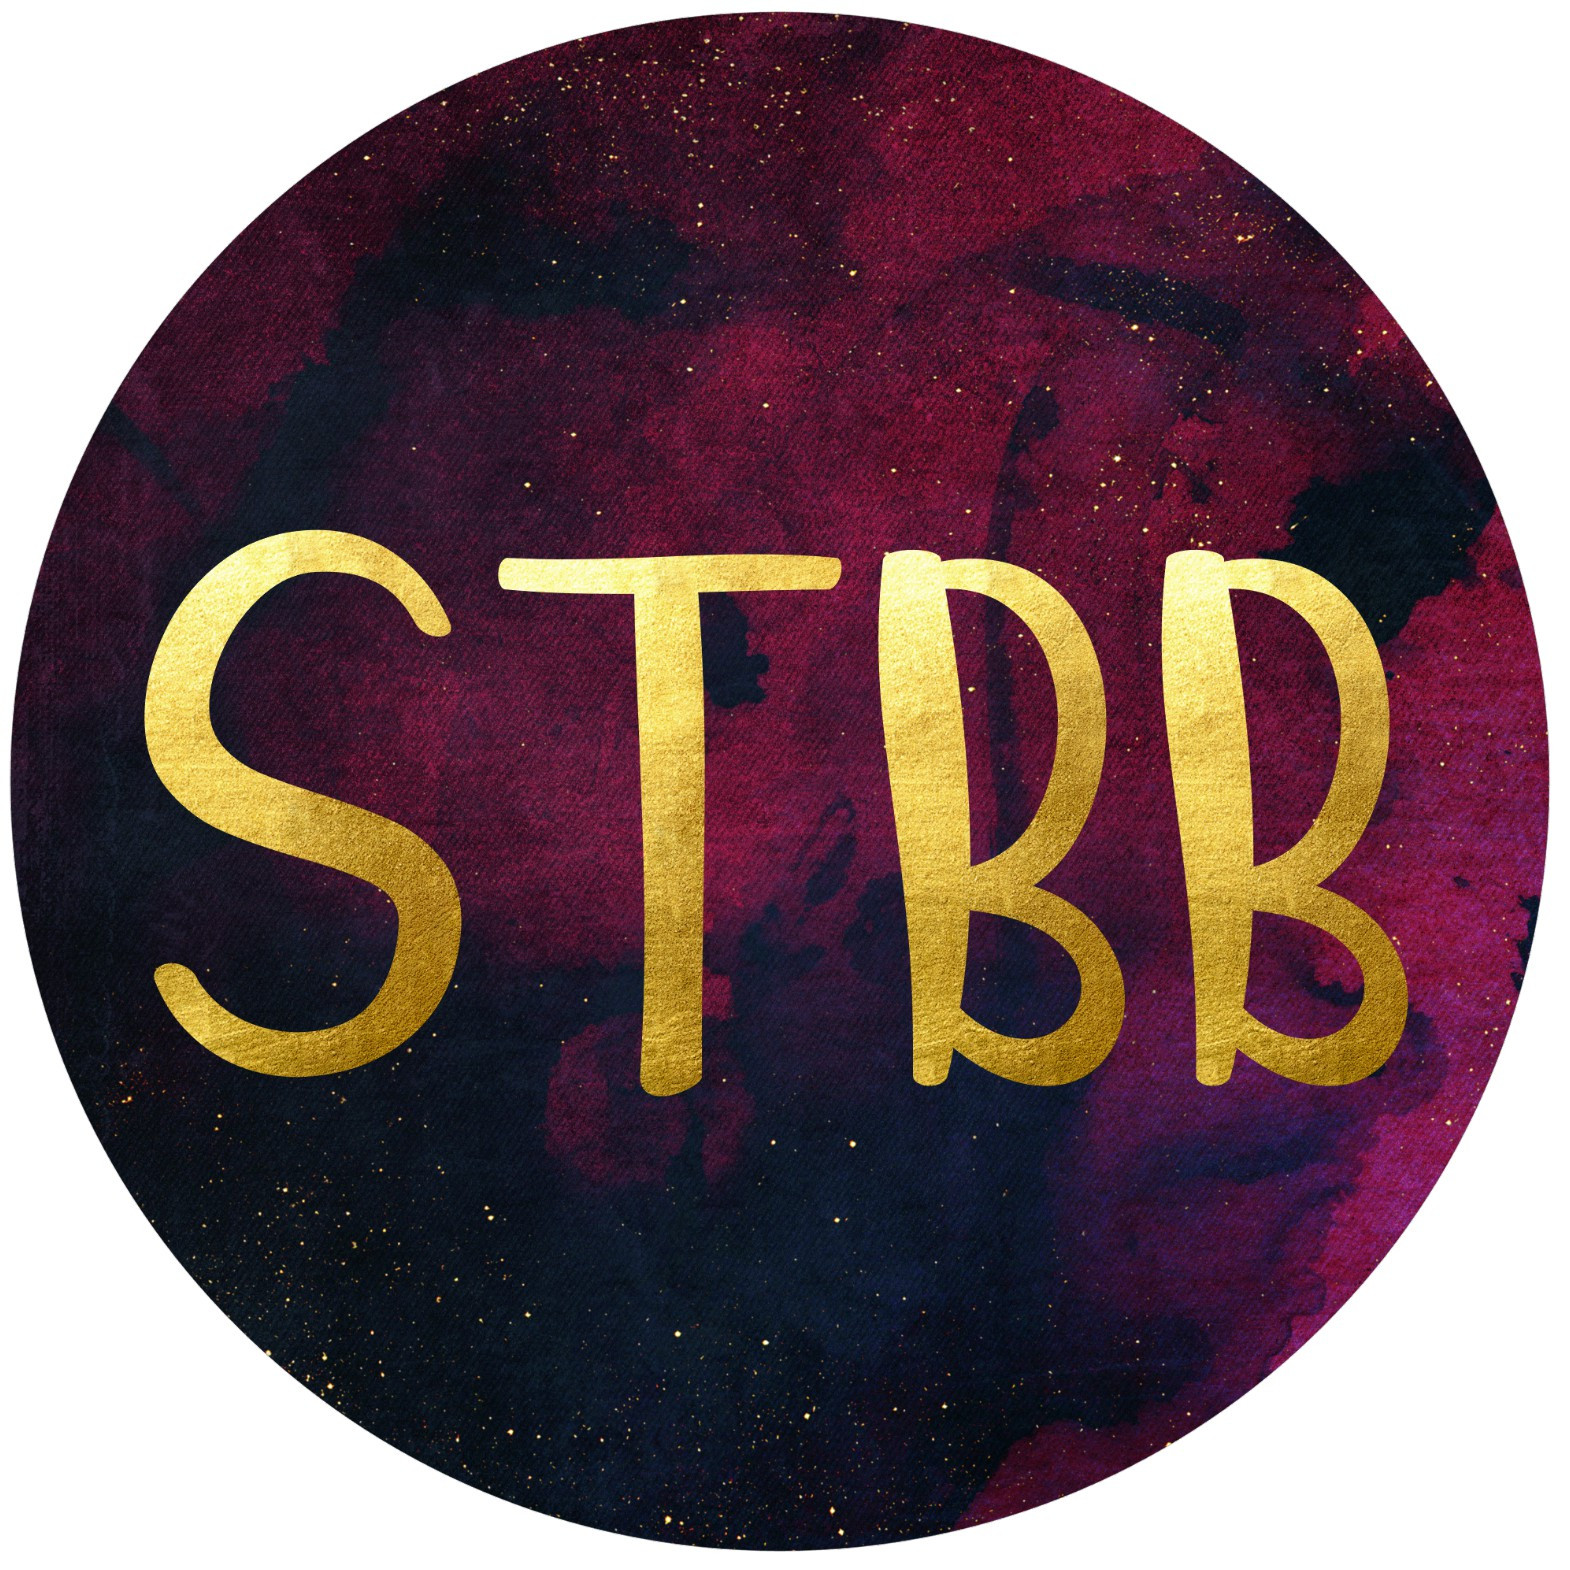 STBB's profile picture